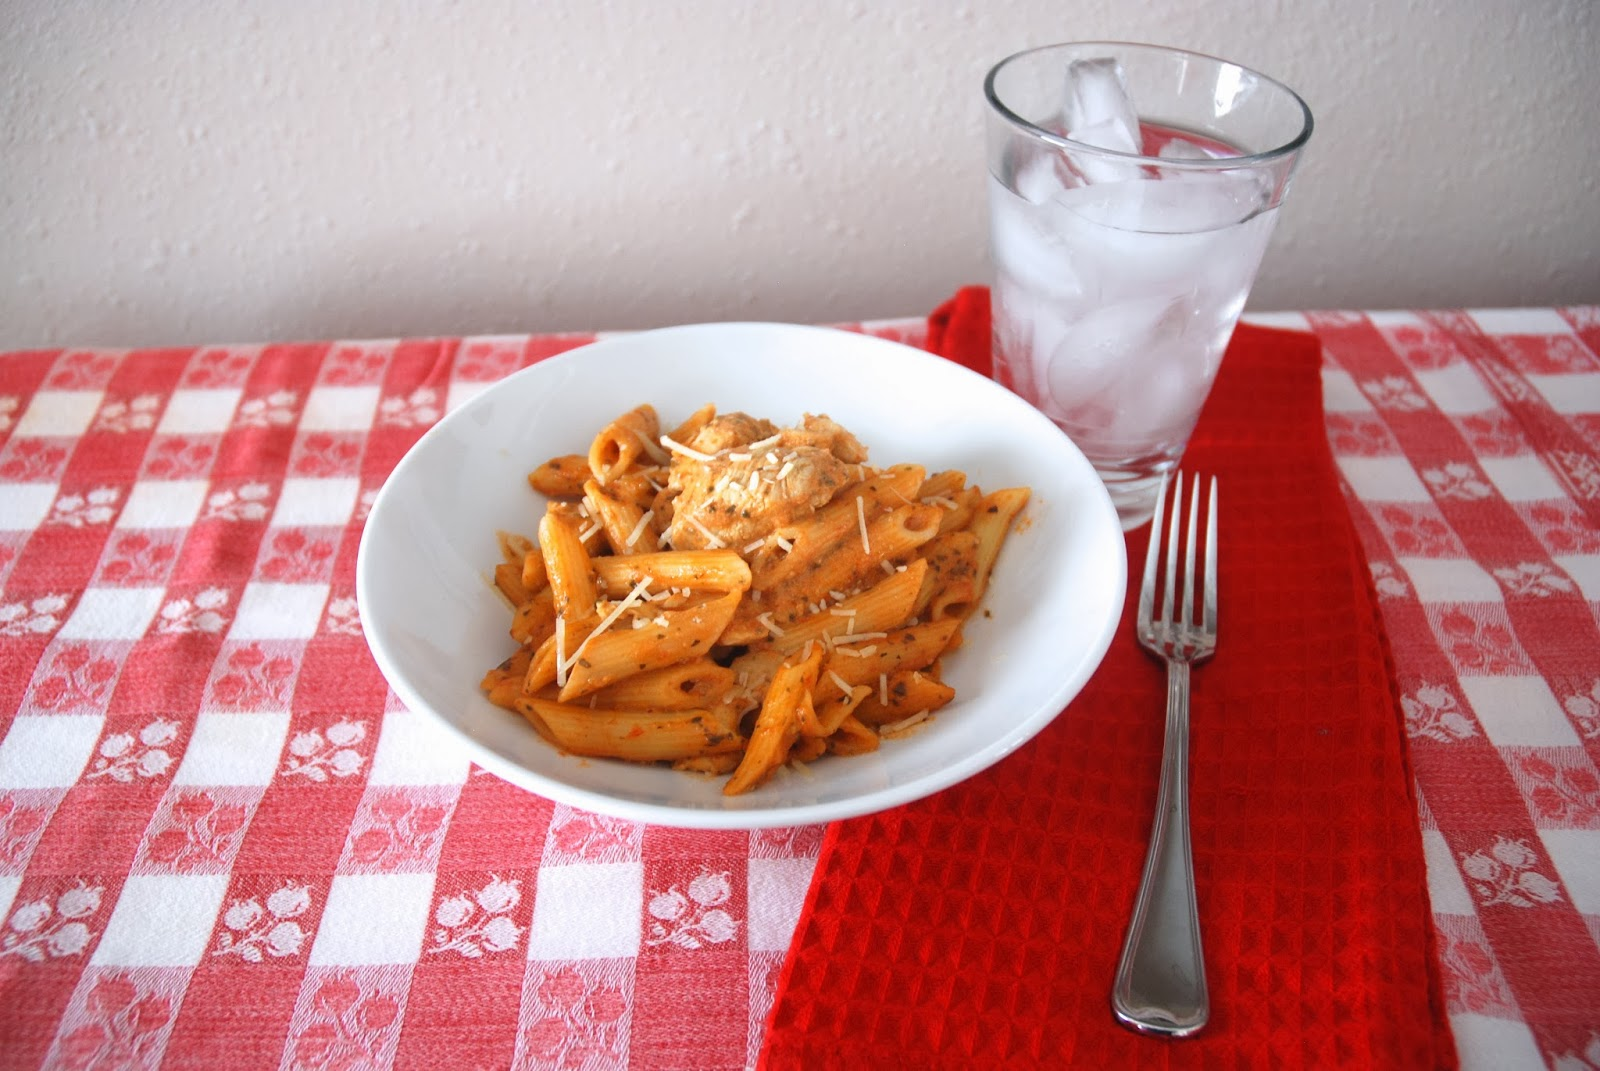 Creamy Pesto & Tomato Penne Pasta with Chicken